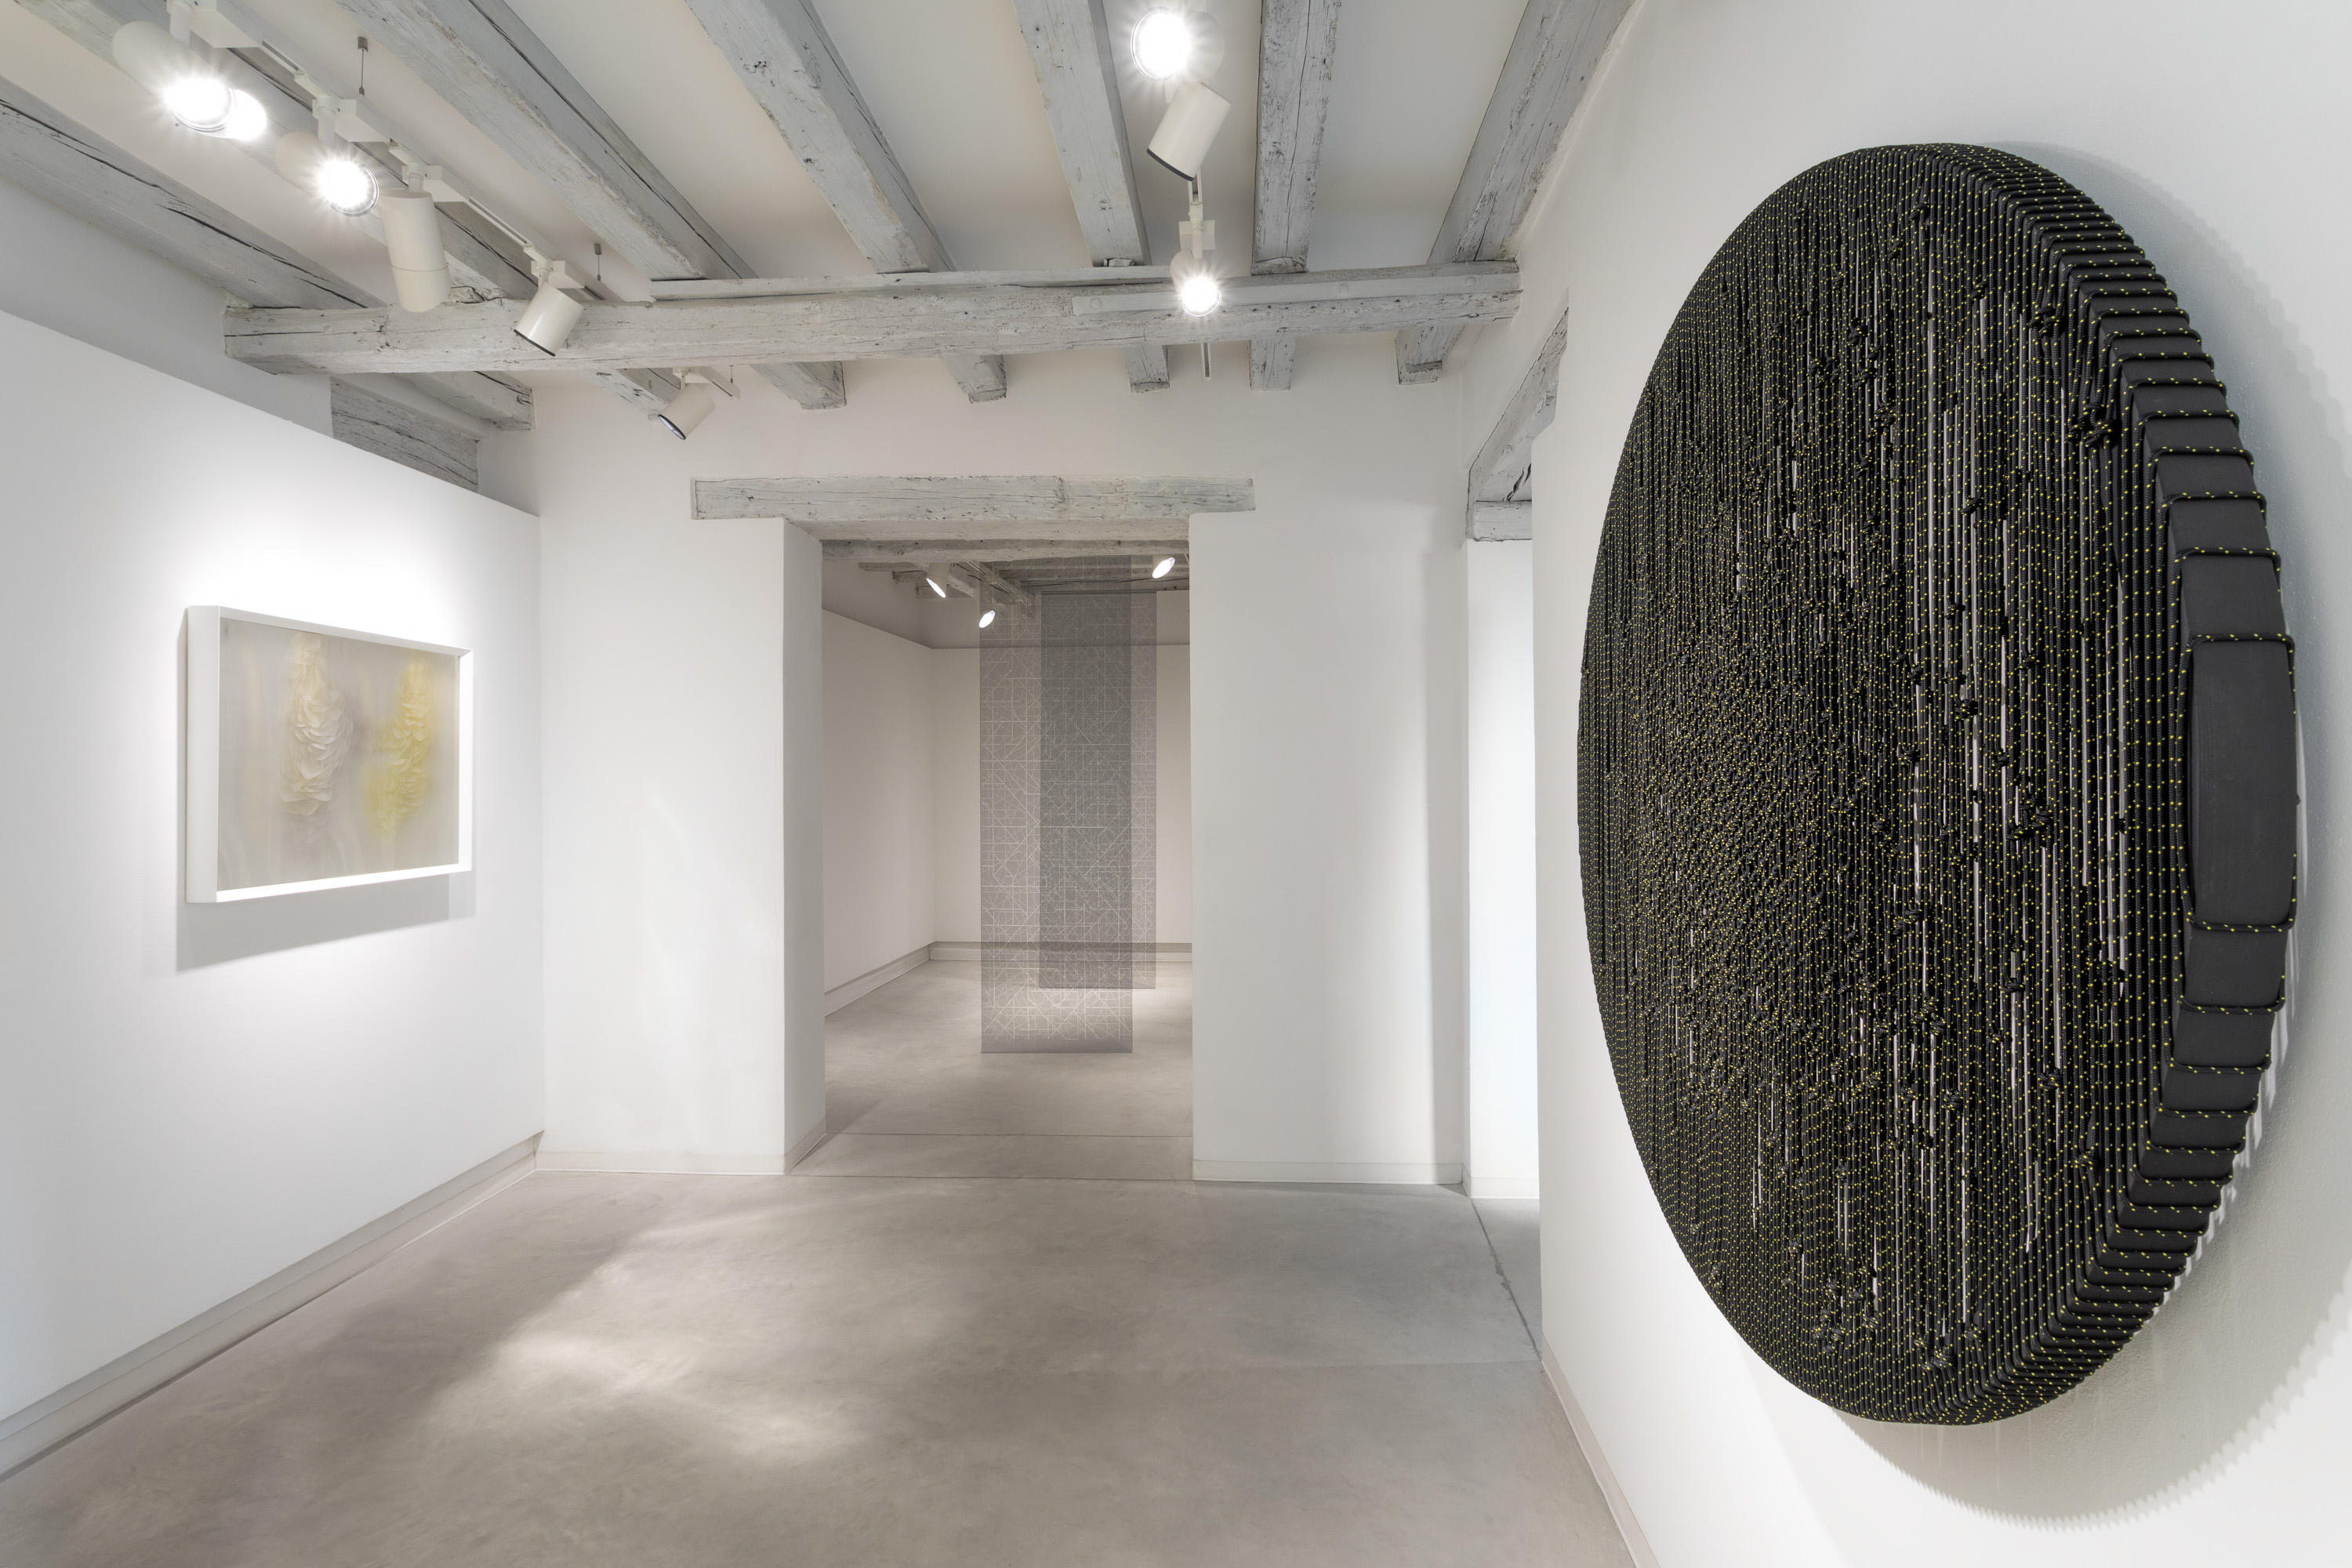 installation view of The Hidden Dimension, Chapter II, Maurizio Donzelli, Arthur Duff, Aldo Grazzi